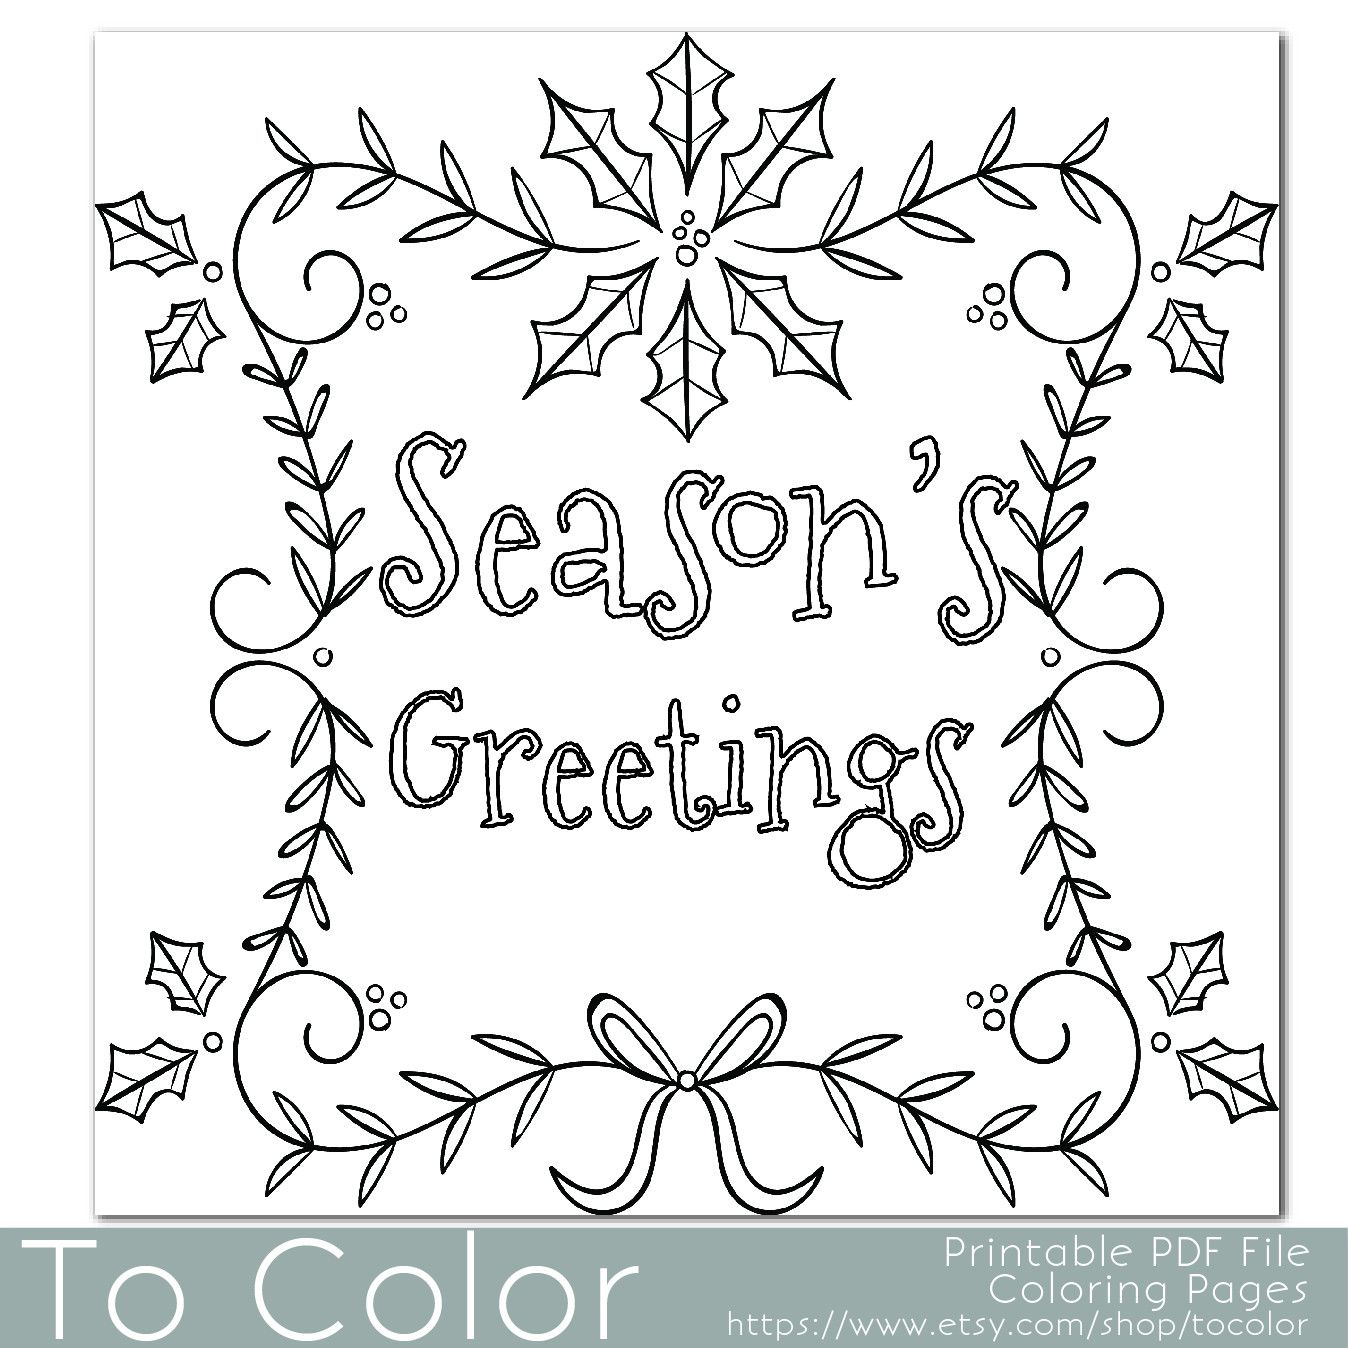 This festive ornament coloring page for adults is a great